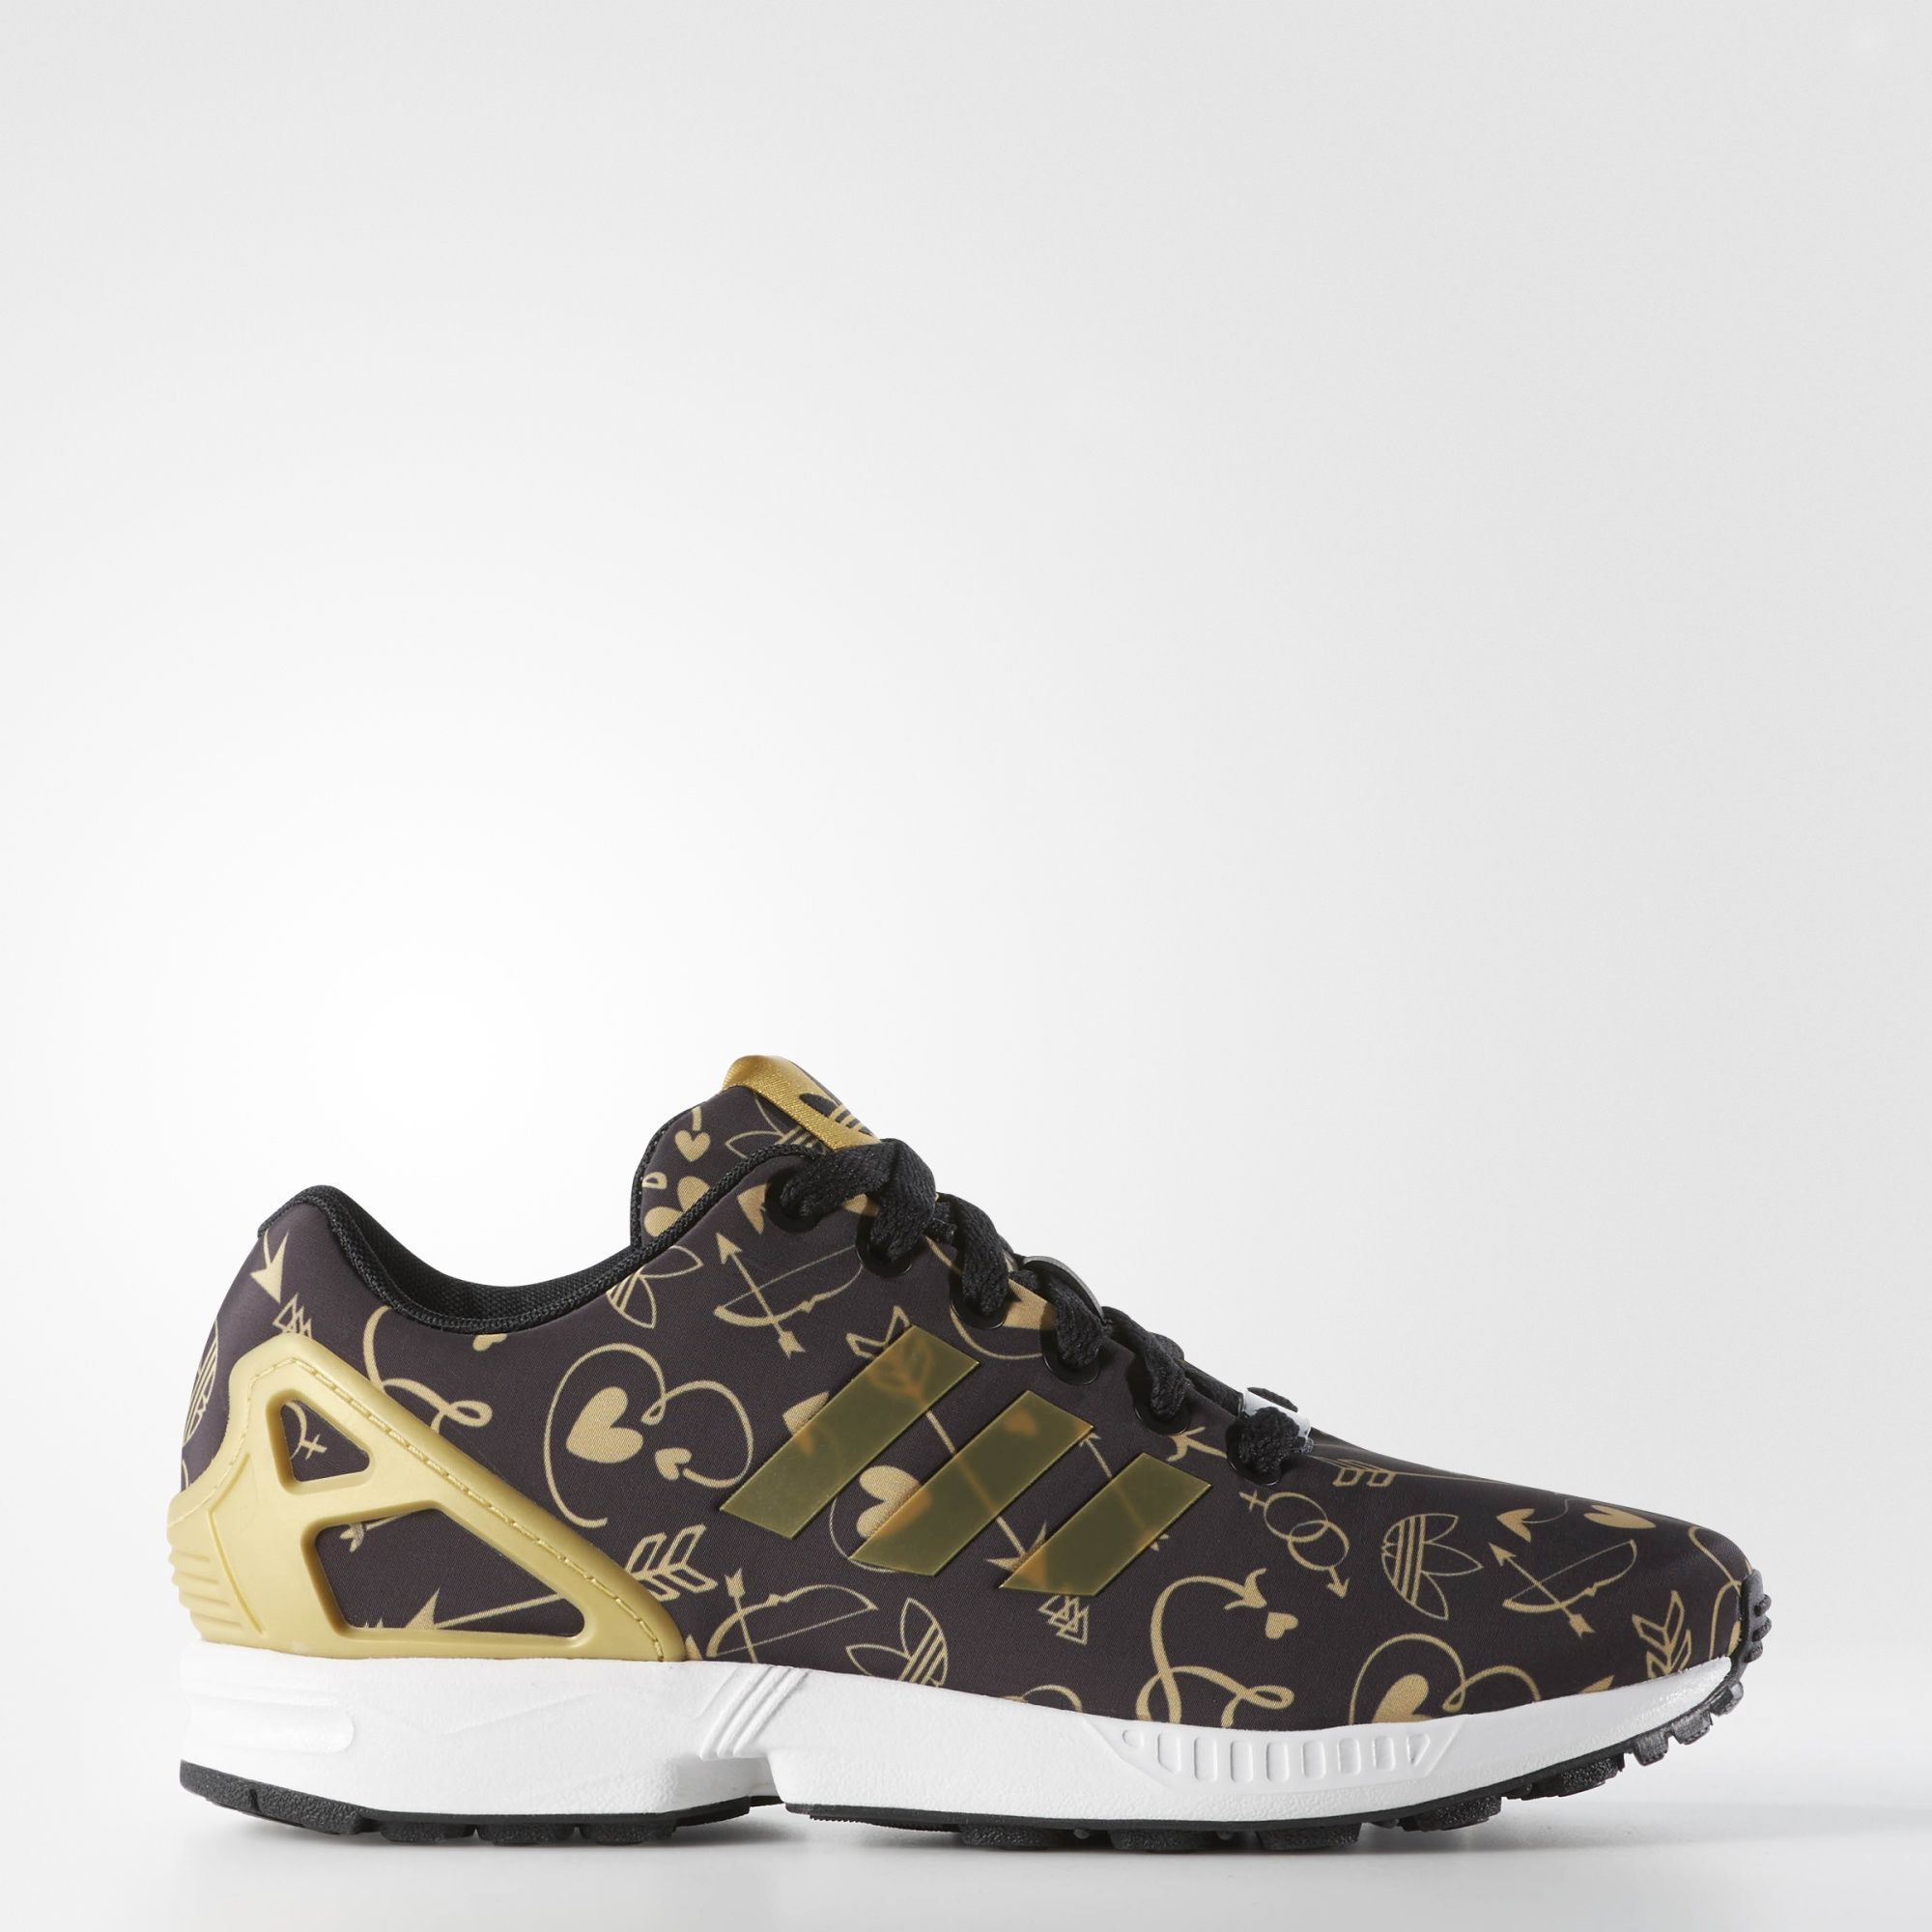 ab58b6c04 adidas - ZX Flux Shoes   90 Color Core Black   Metallic Gold   Running White  (B27462)